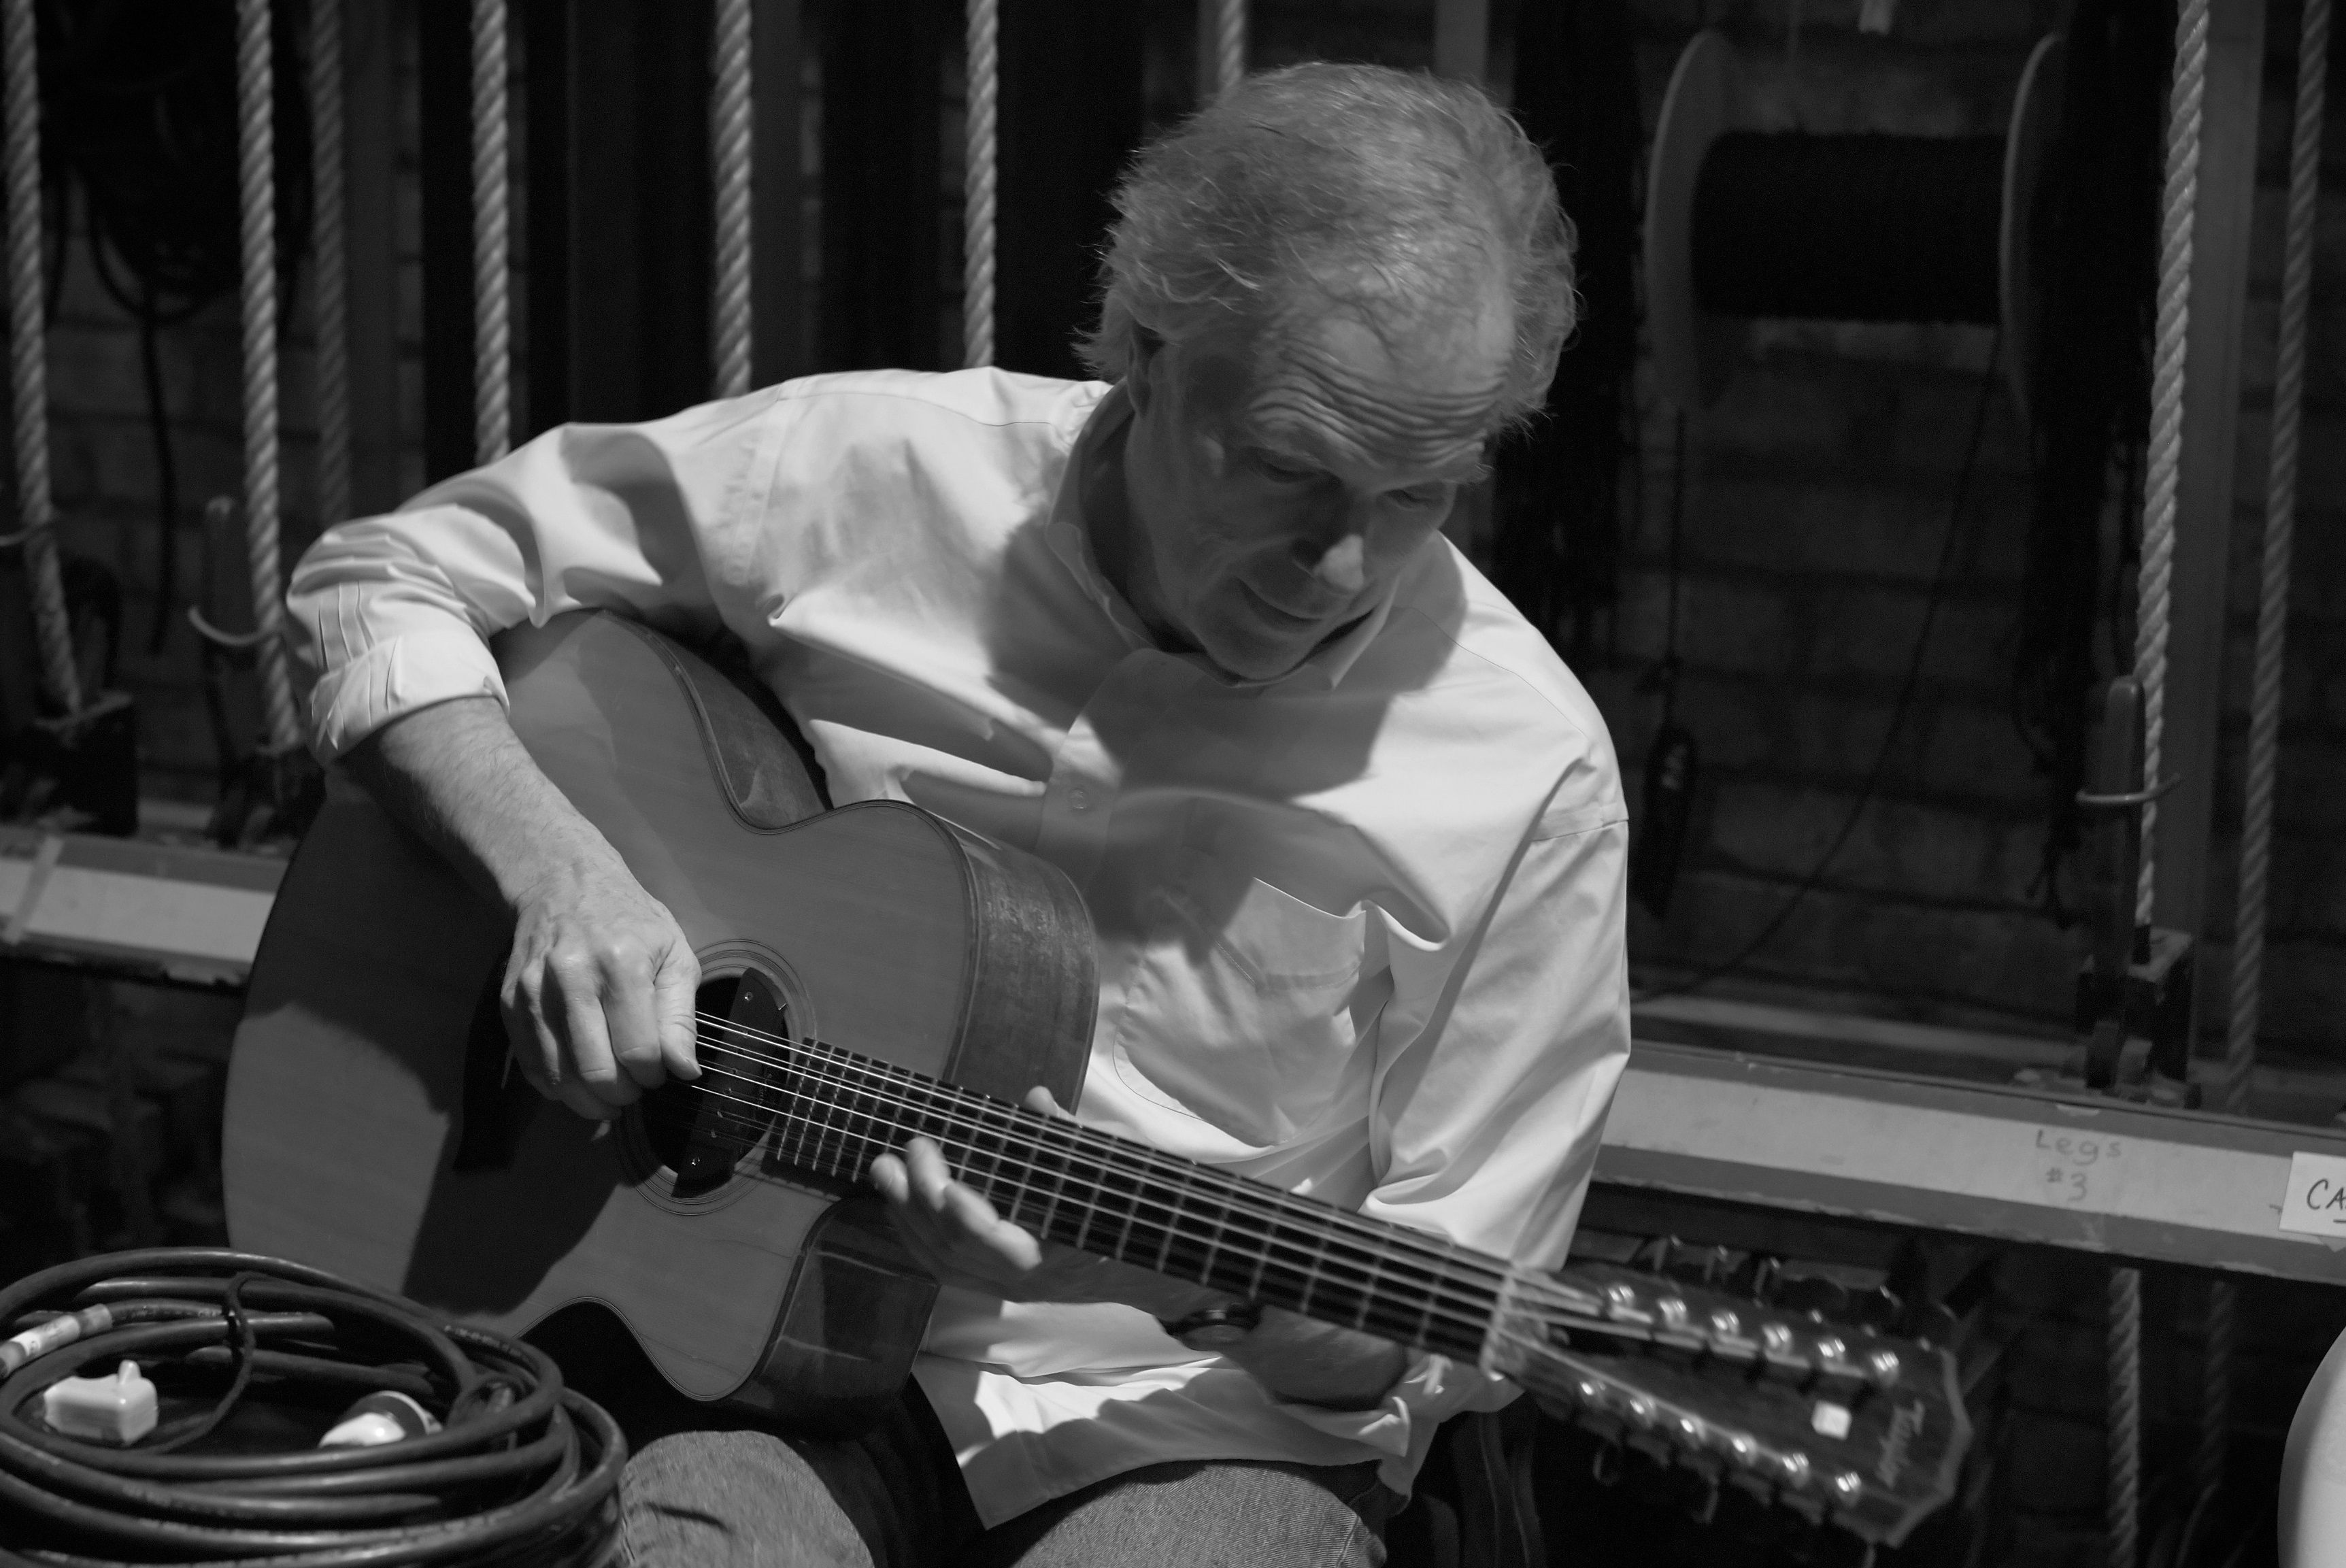 TBT - Leo Kottke - Thursday, June 21, 2018, Doors: 6:30 PM